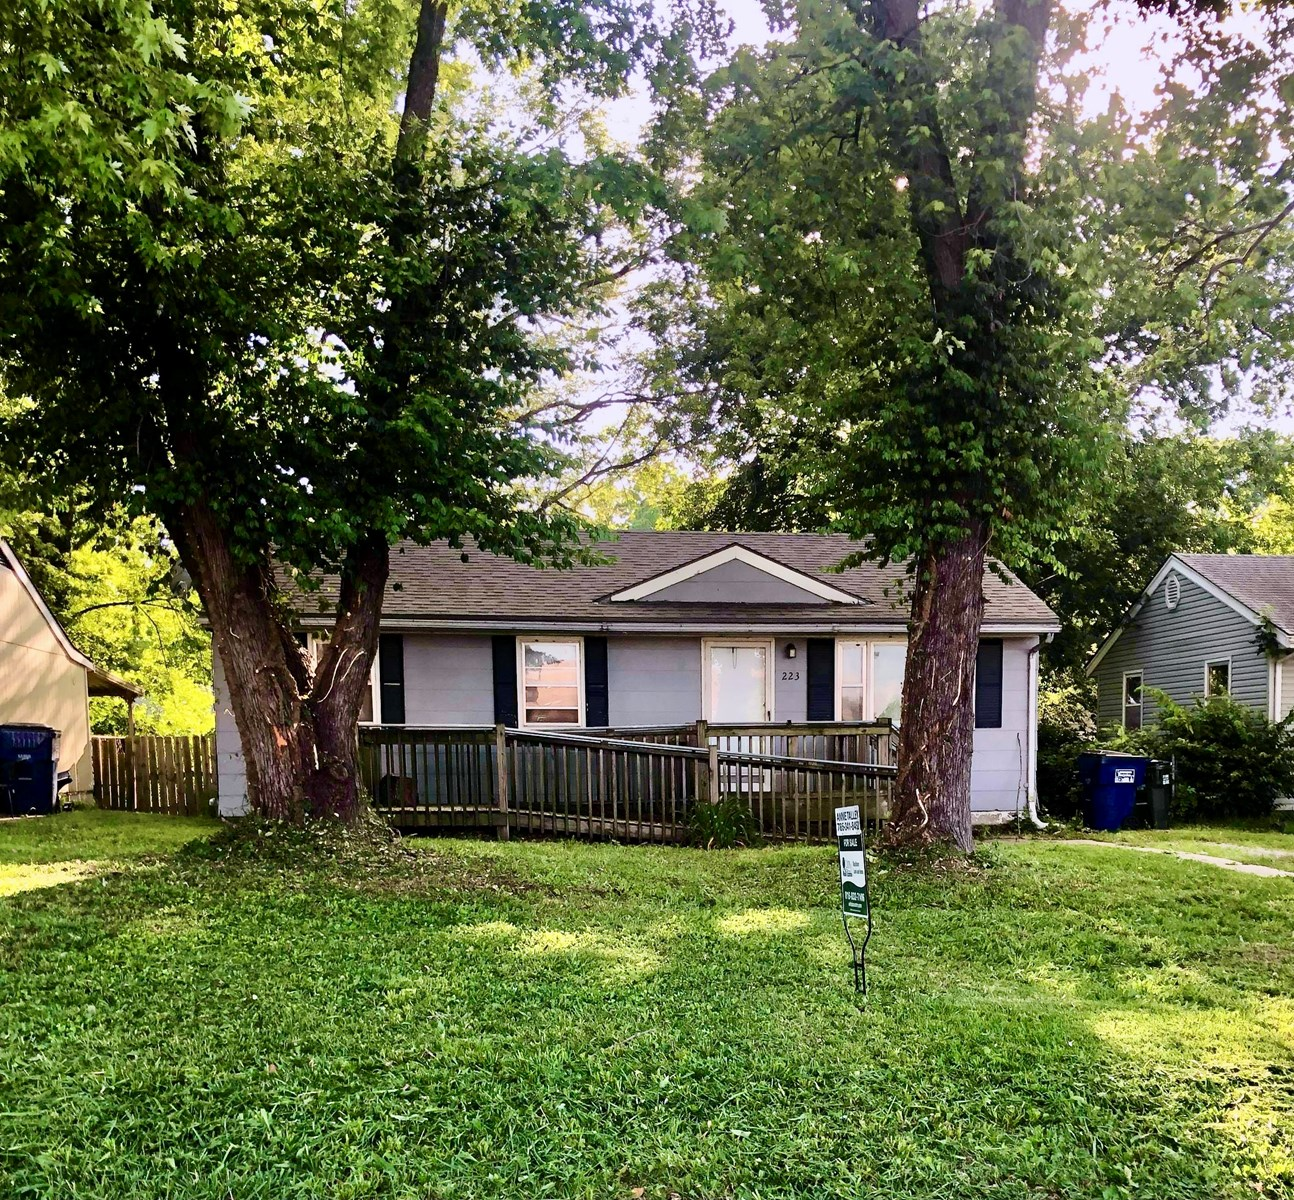 Home For Sale in Lawrence Kansas, Douglas County